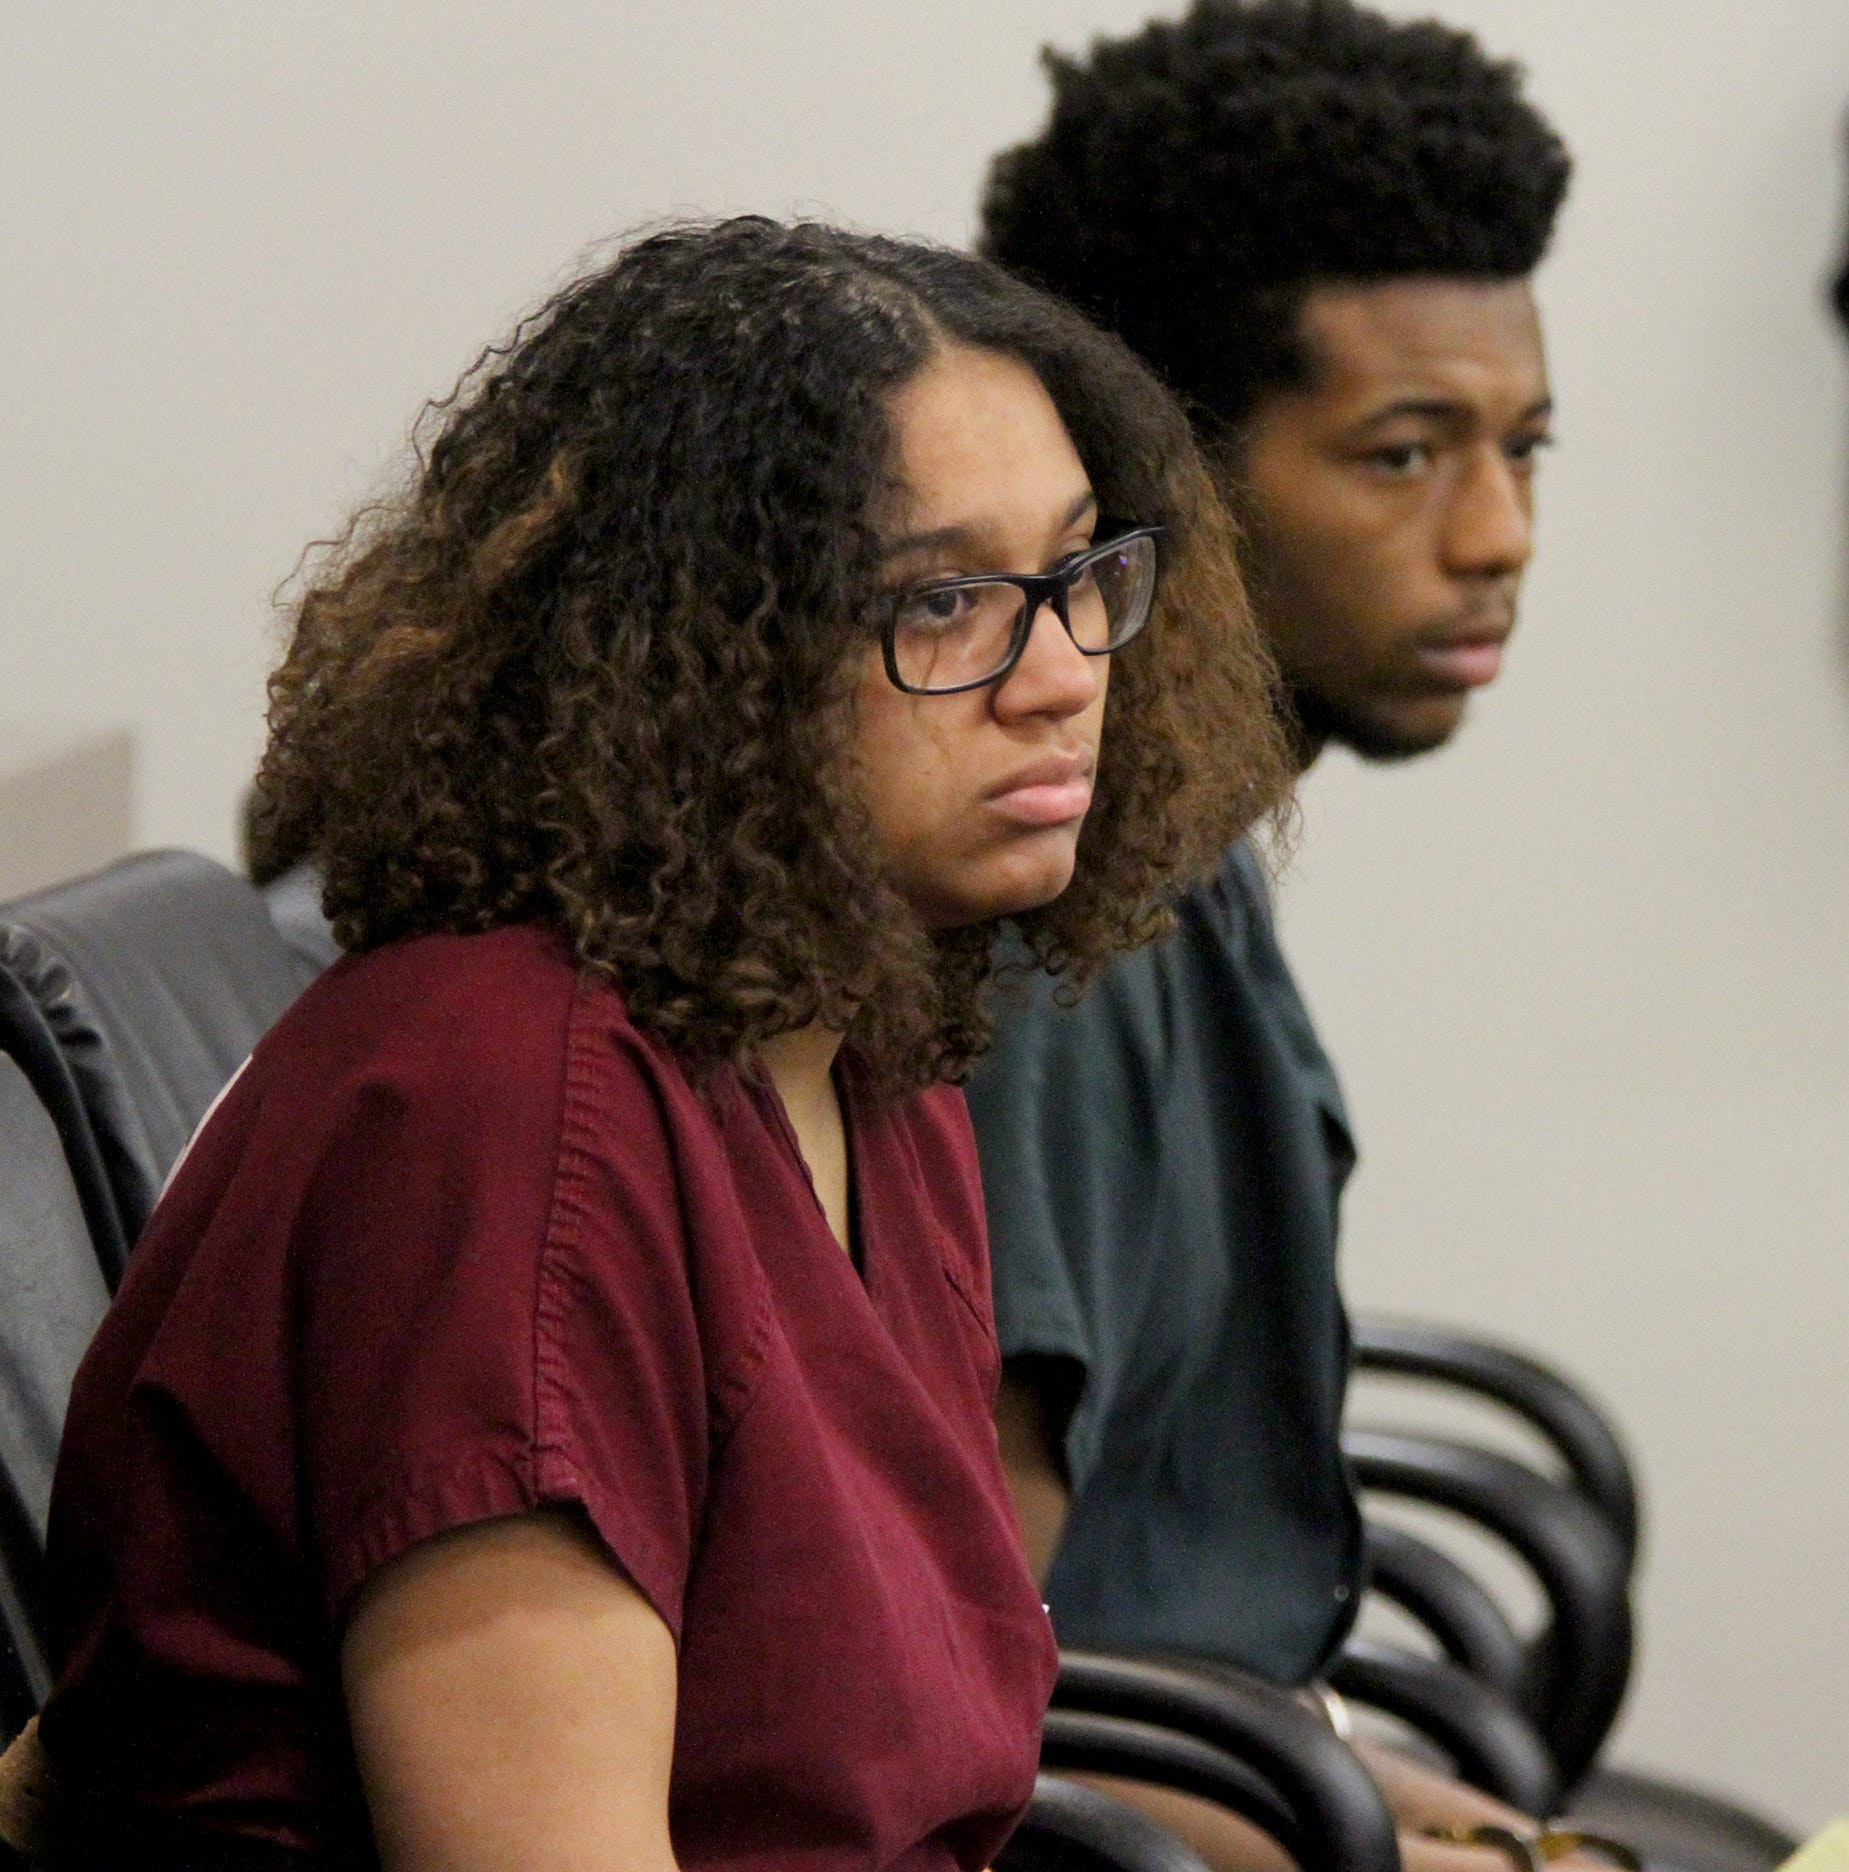 Courtroom in tears as teens accused of killing a newborn baby in Neptune face judge